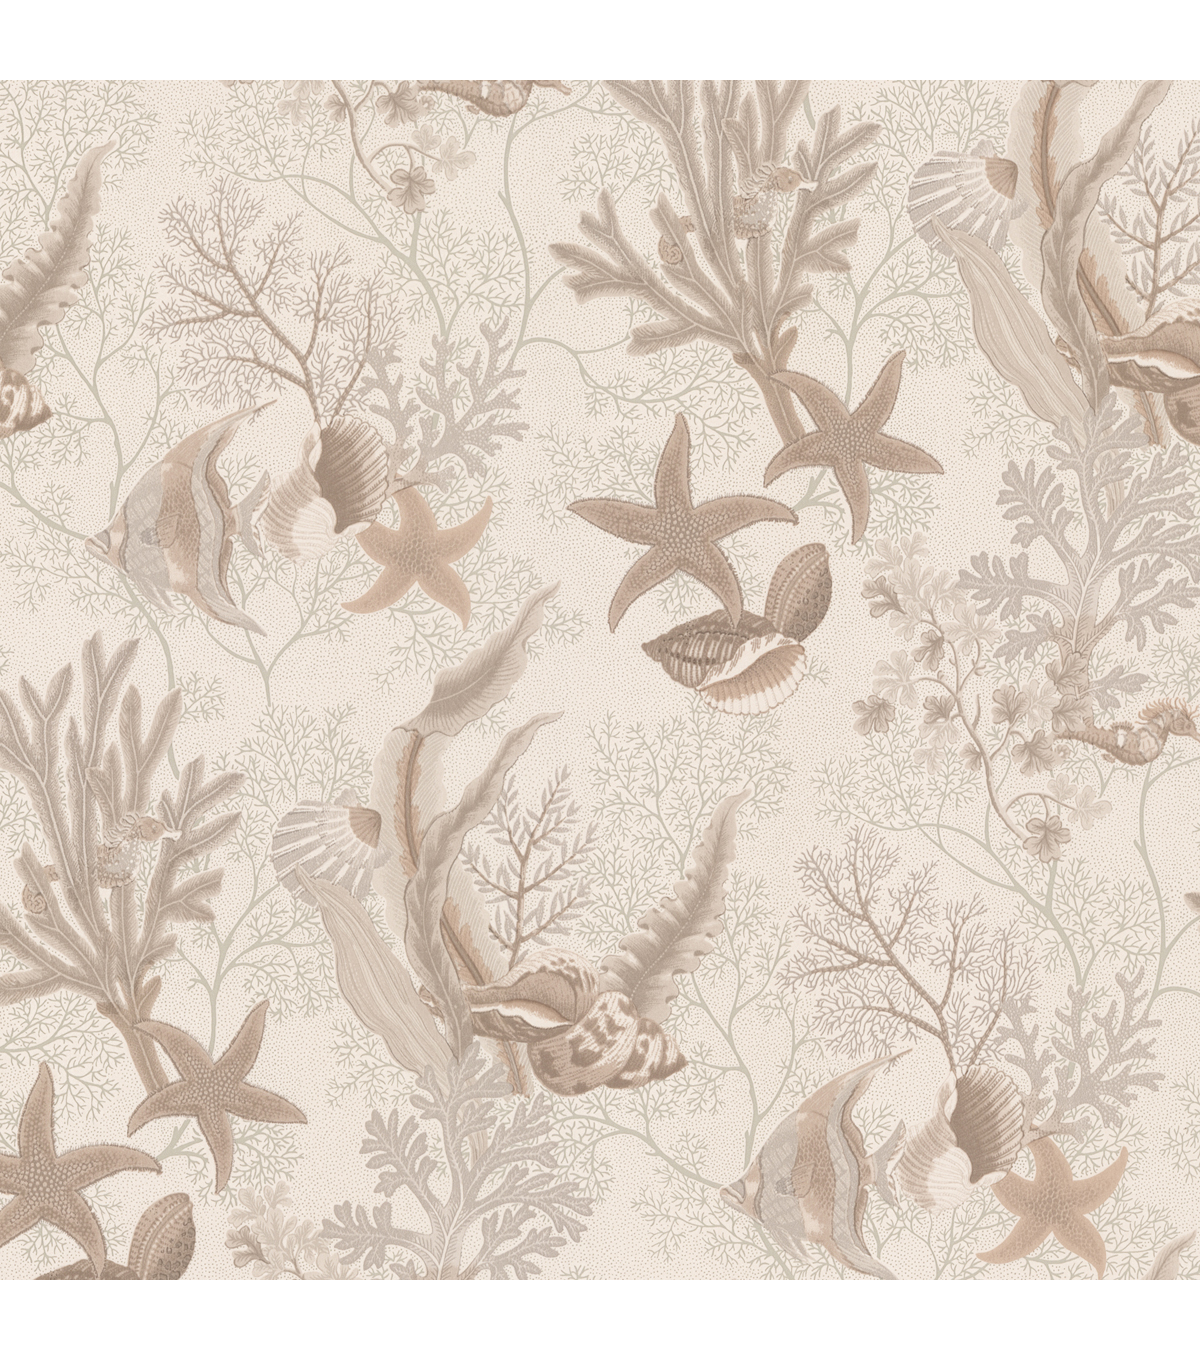 Percival Beige Ocean Scenic Wallpaper Sample